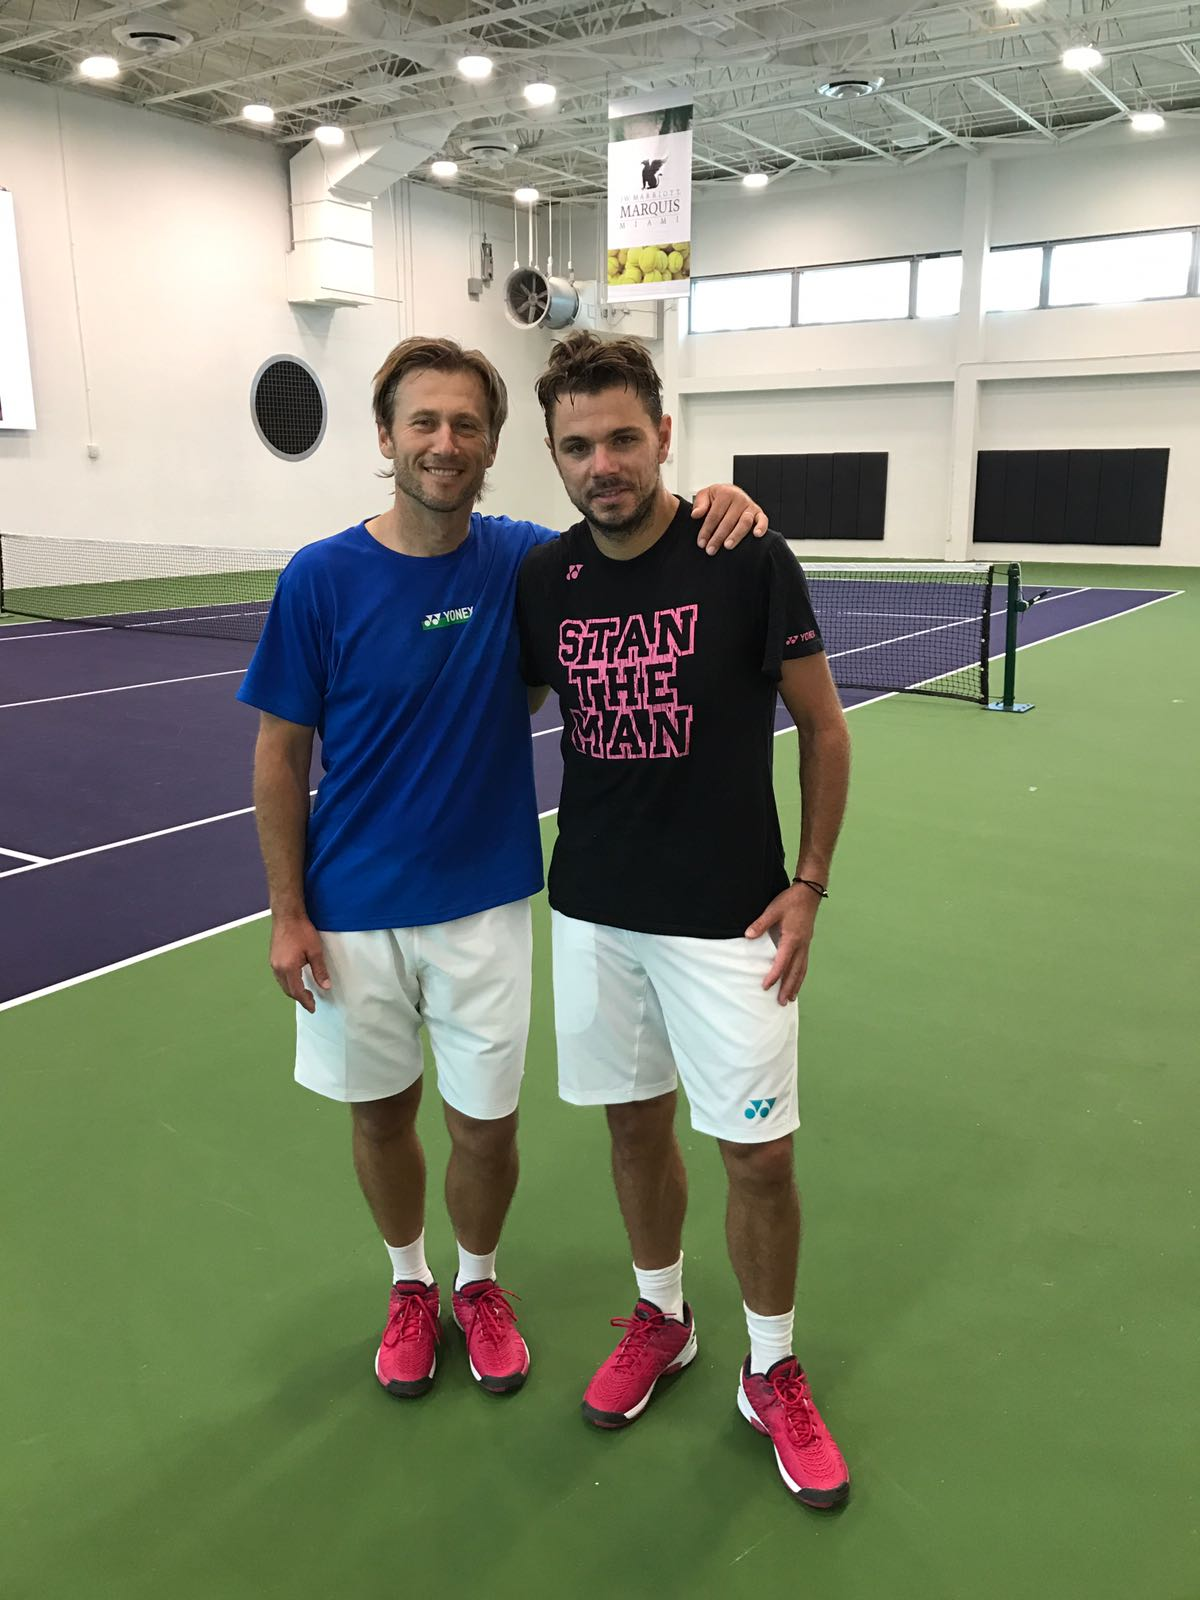 Tennis Coach Nick Horvat Tennis Player Stan Wawrinka - Miami Open 2017